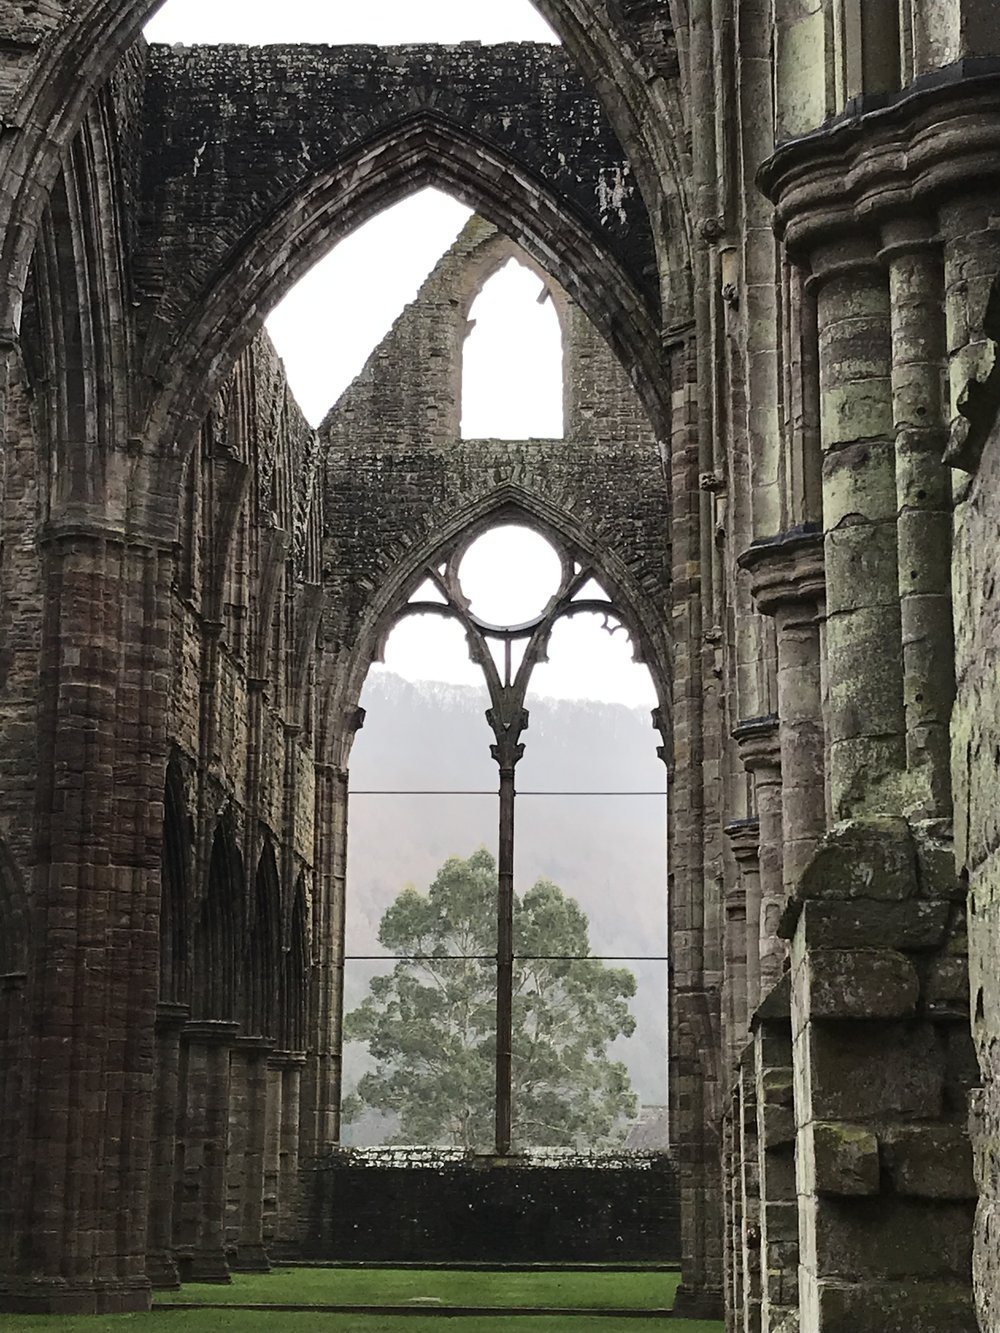 Tintern Abbey, with nature stealing the show